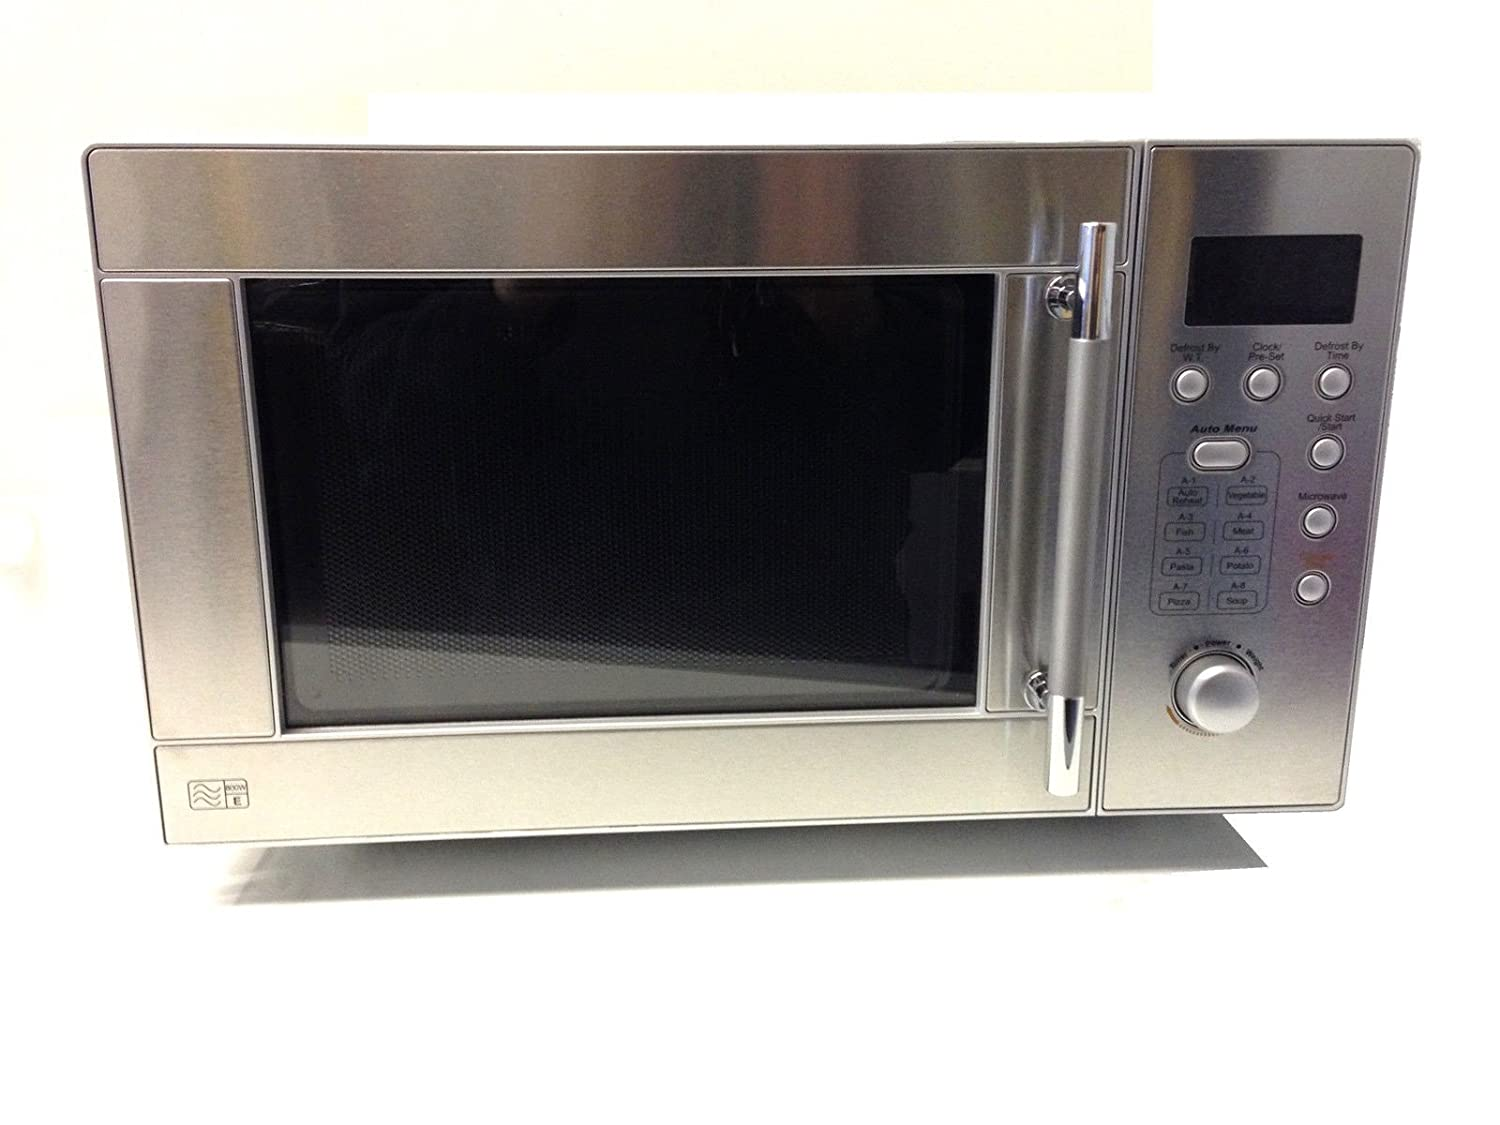 20L Stainless Steel Manual Auto Function Multistage Microwave Oven 800W Thats How International